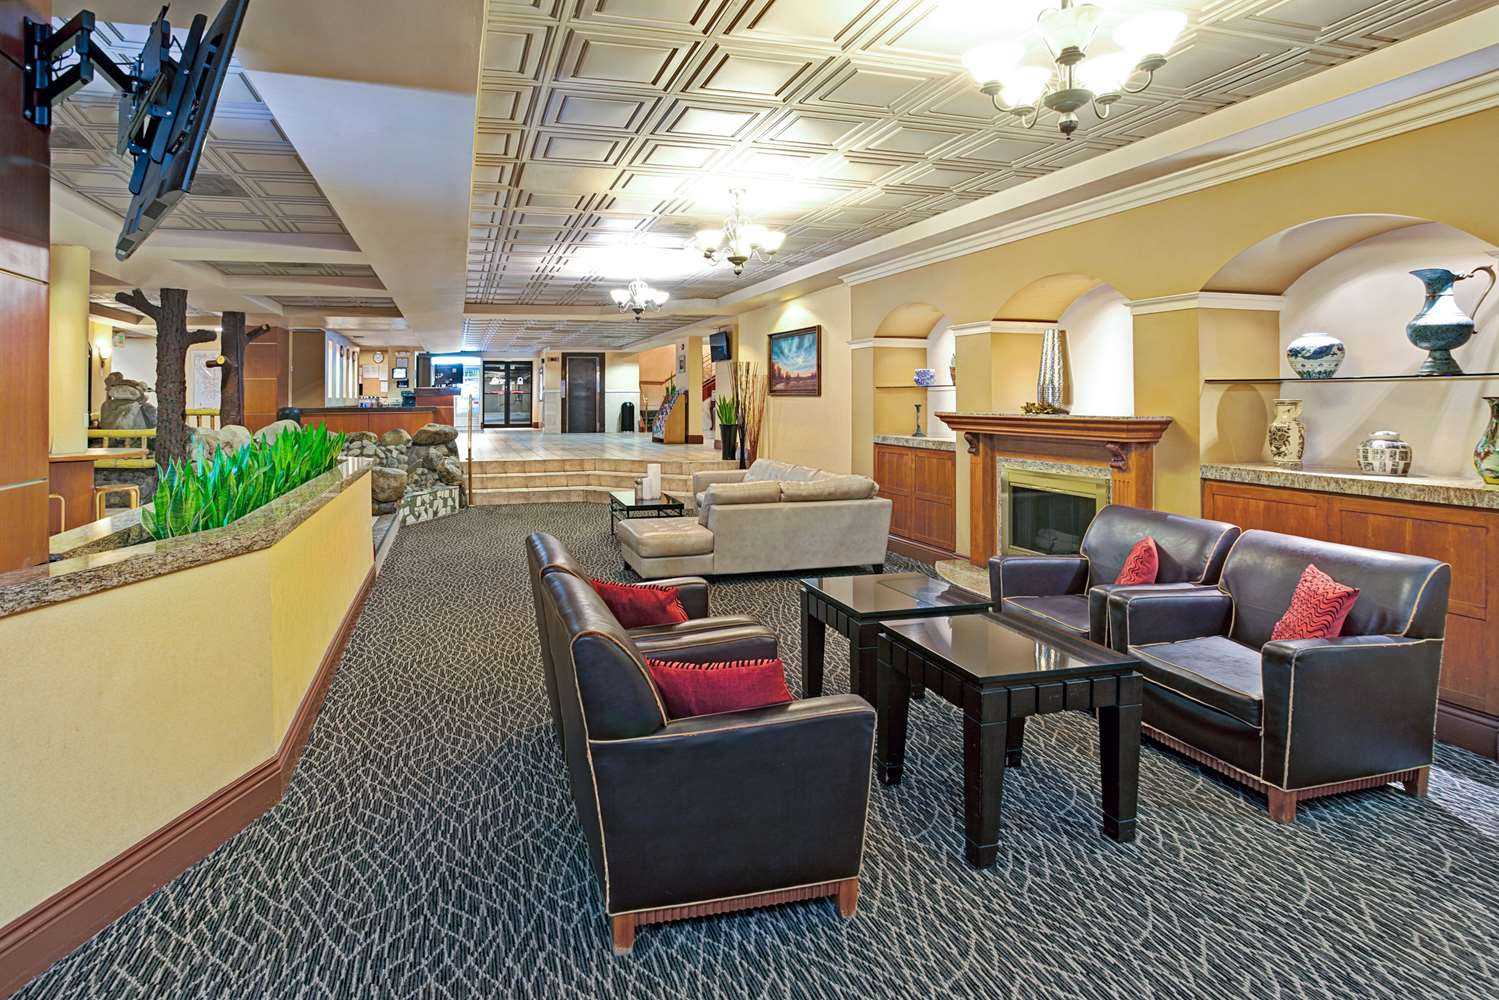 Ramada Hotel Convention Center Los Angeles, CA - See Discounts